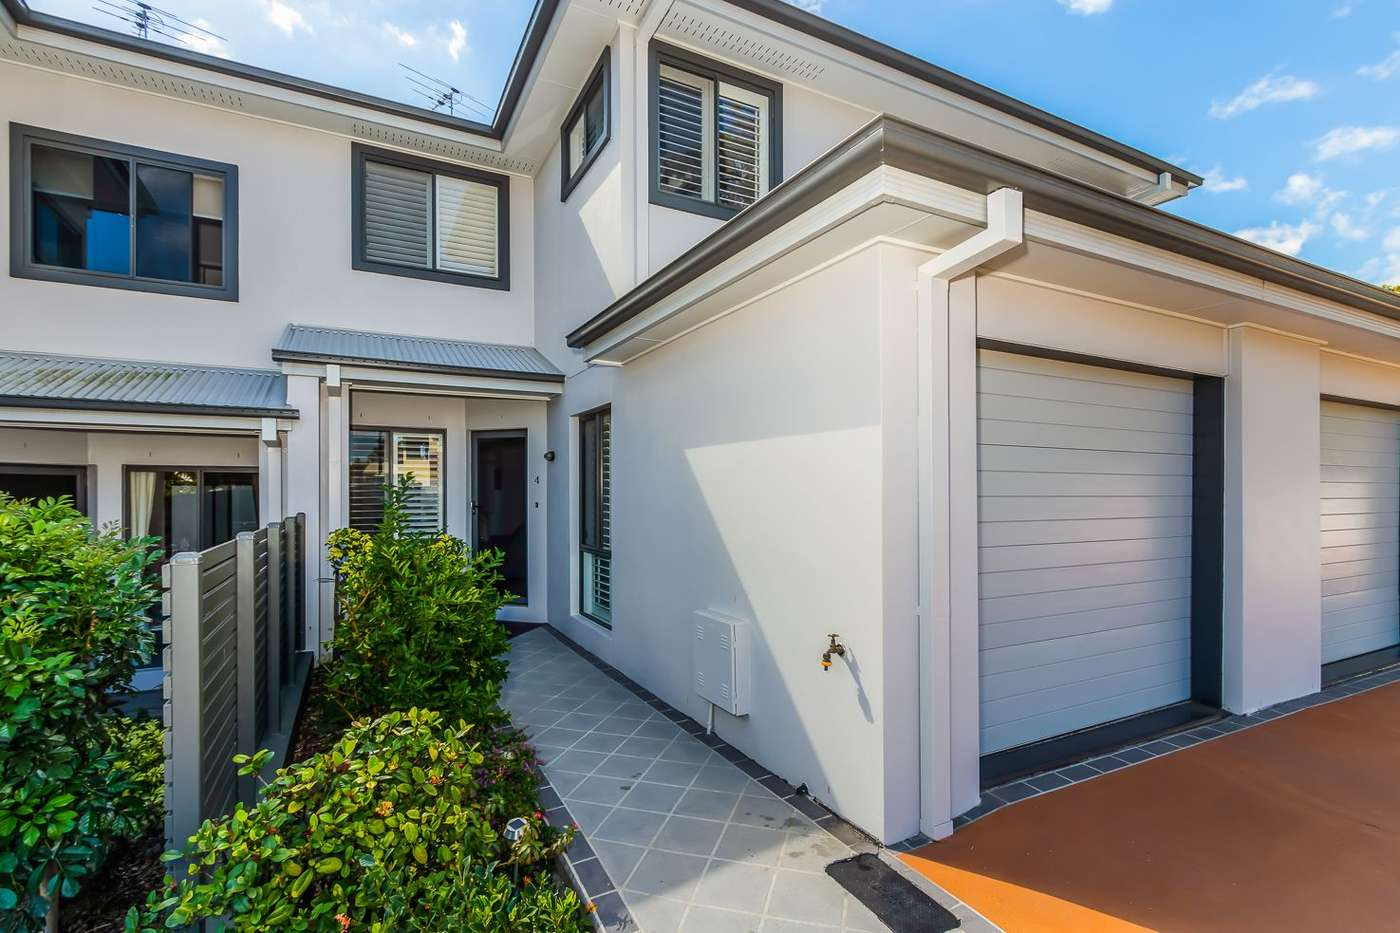 Main view of Homely townhouse listing, 4/35 Central Avenue, Mount Ommaney, QLD 4074